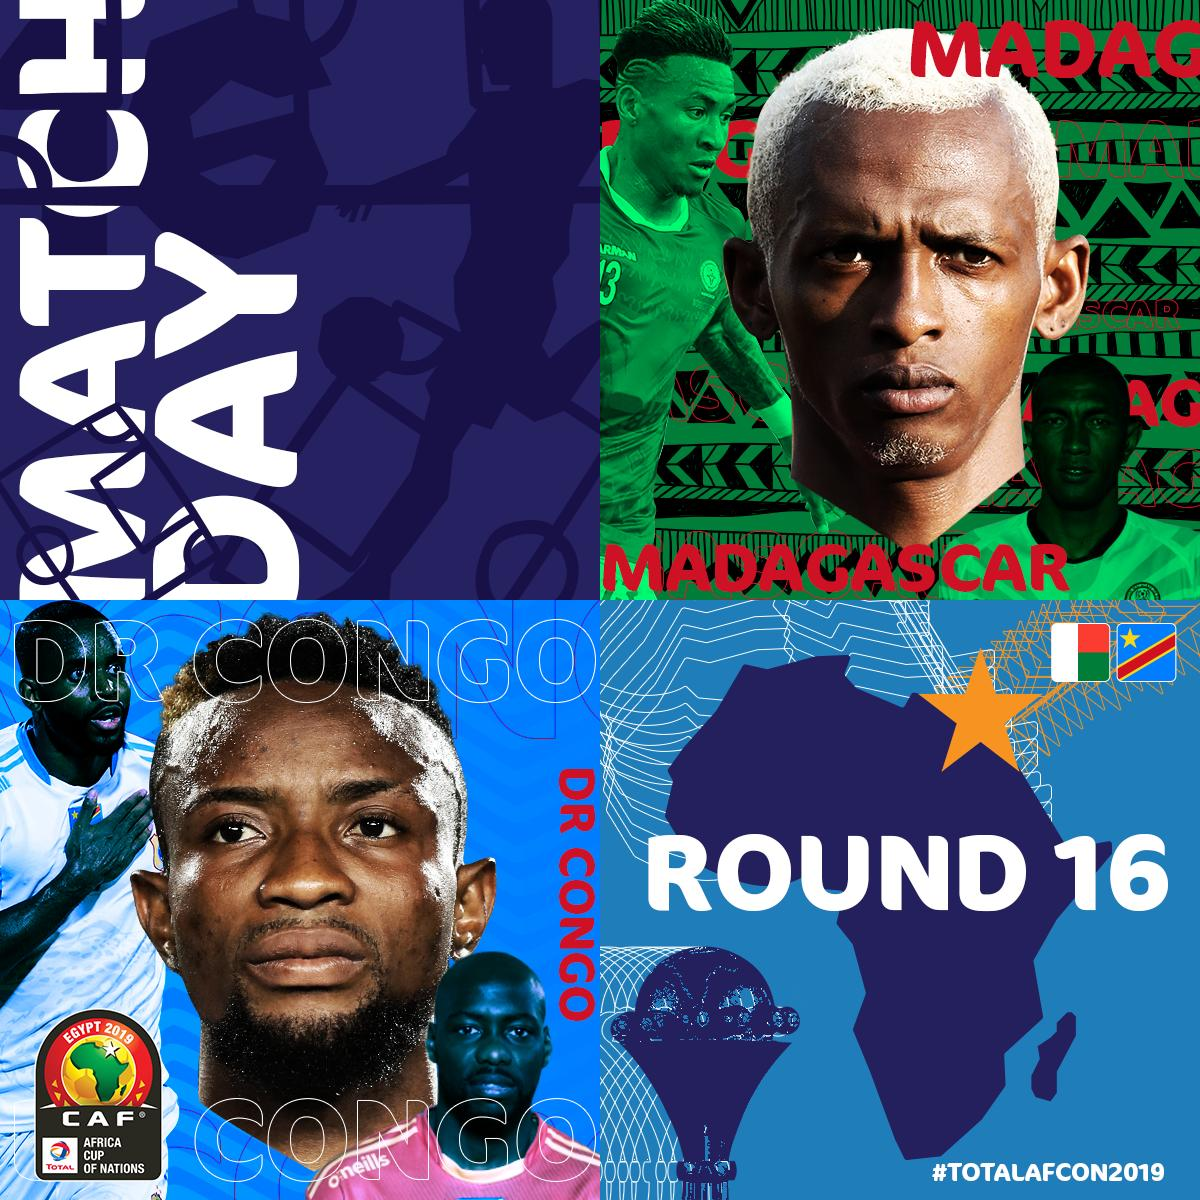 #ALEFABAREA are the first new team to qualify to the knockout stages of AFCON since Cape Verde in 2013   @fecofa_kinshasa have some history of their own to make too   #MADCOD #TotalAFCON2019<br>http://pic.twitter.com/IQPS0mpJ9y